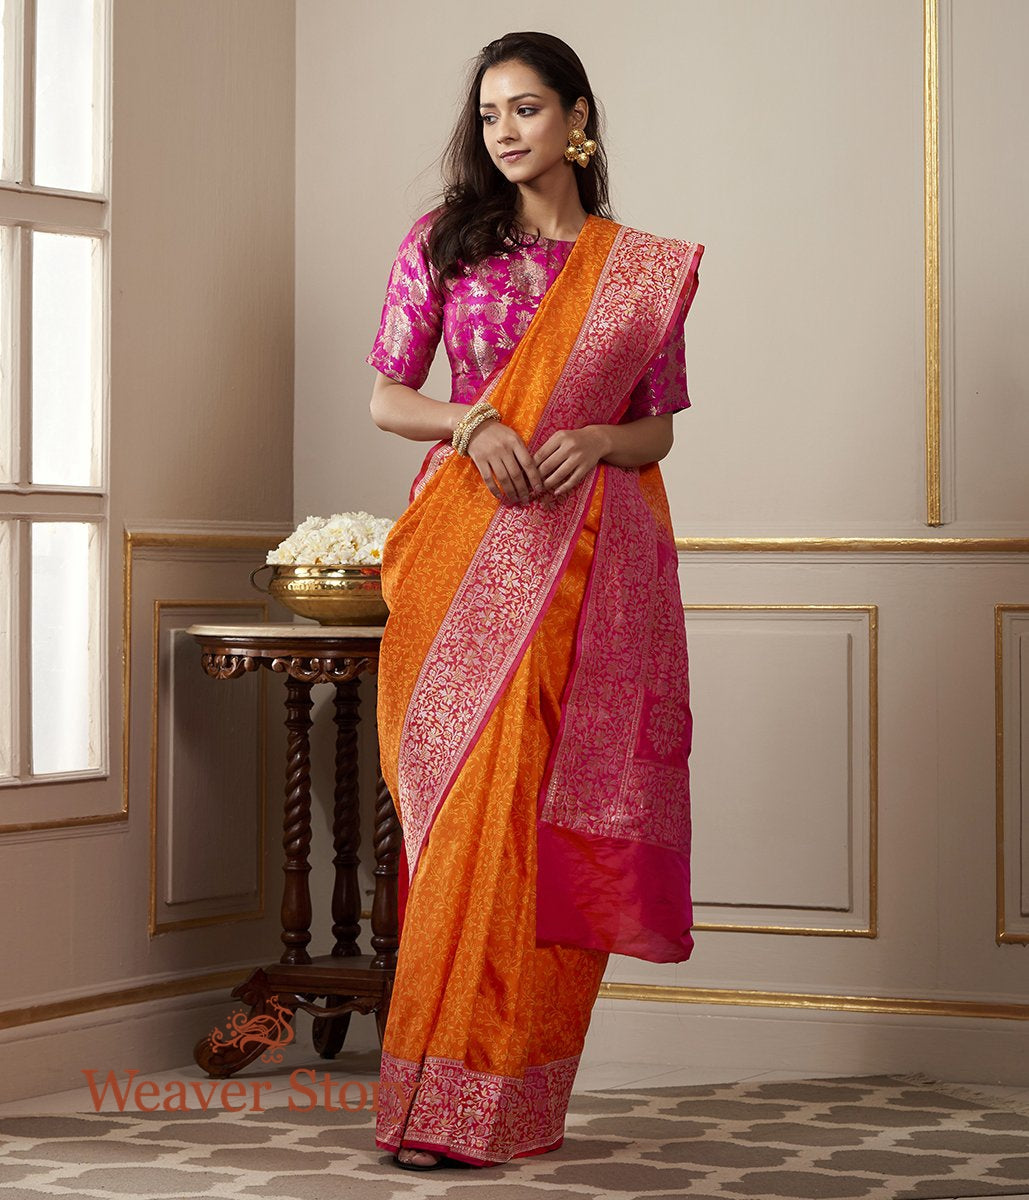 Handwoven Orange and Pink Banarasi Tanchoi Saree with Kadhwa Border with Woven Leaf Motifs